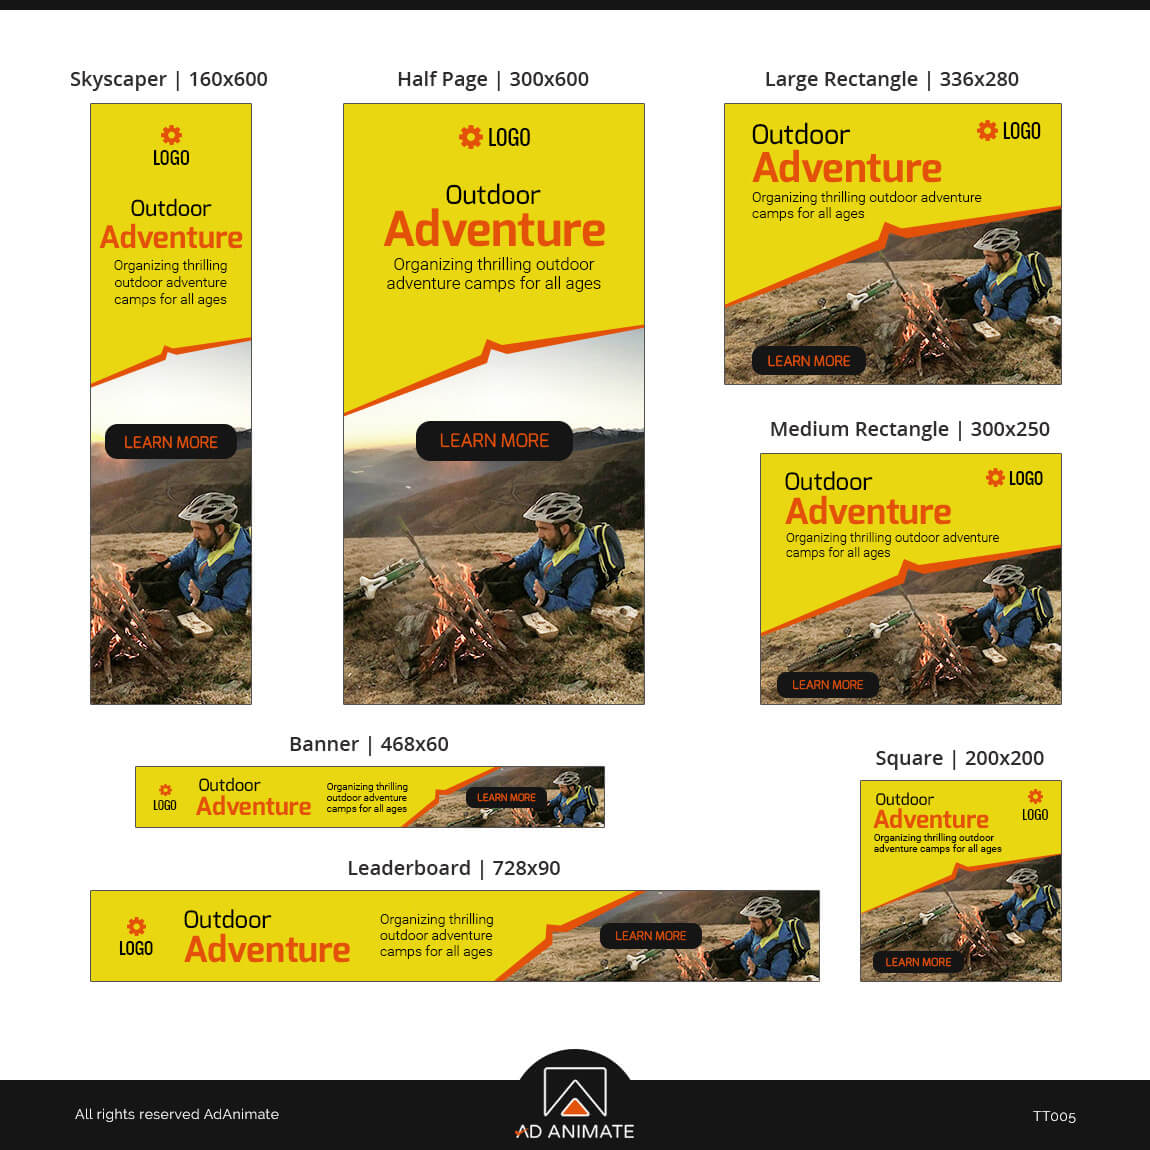 Adventure Camp banner design ad